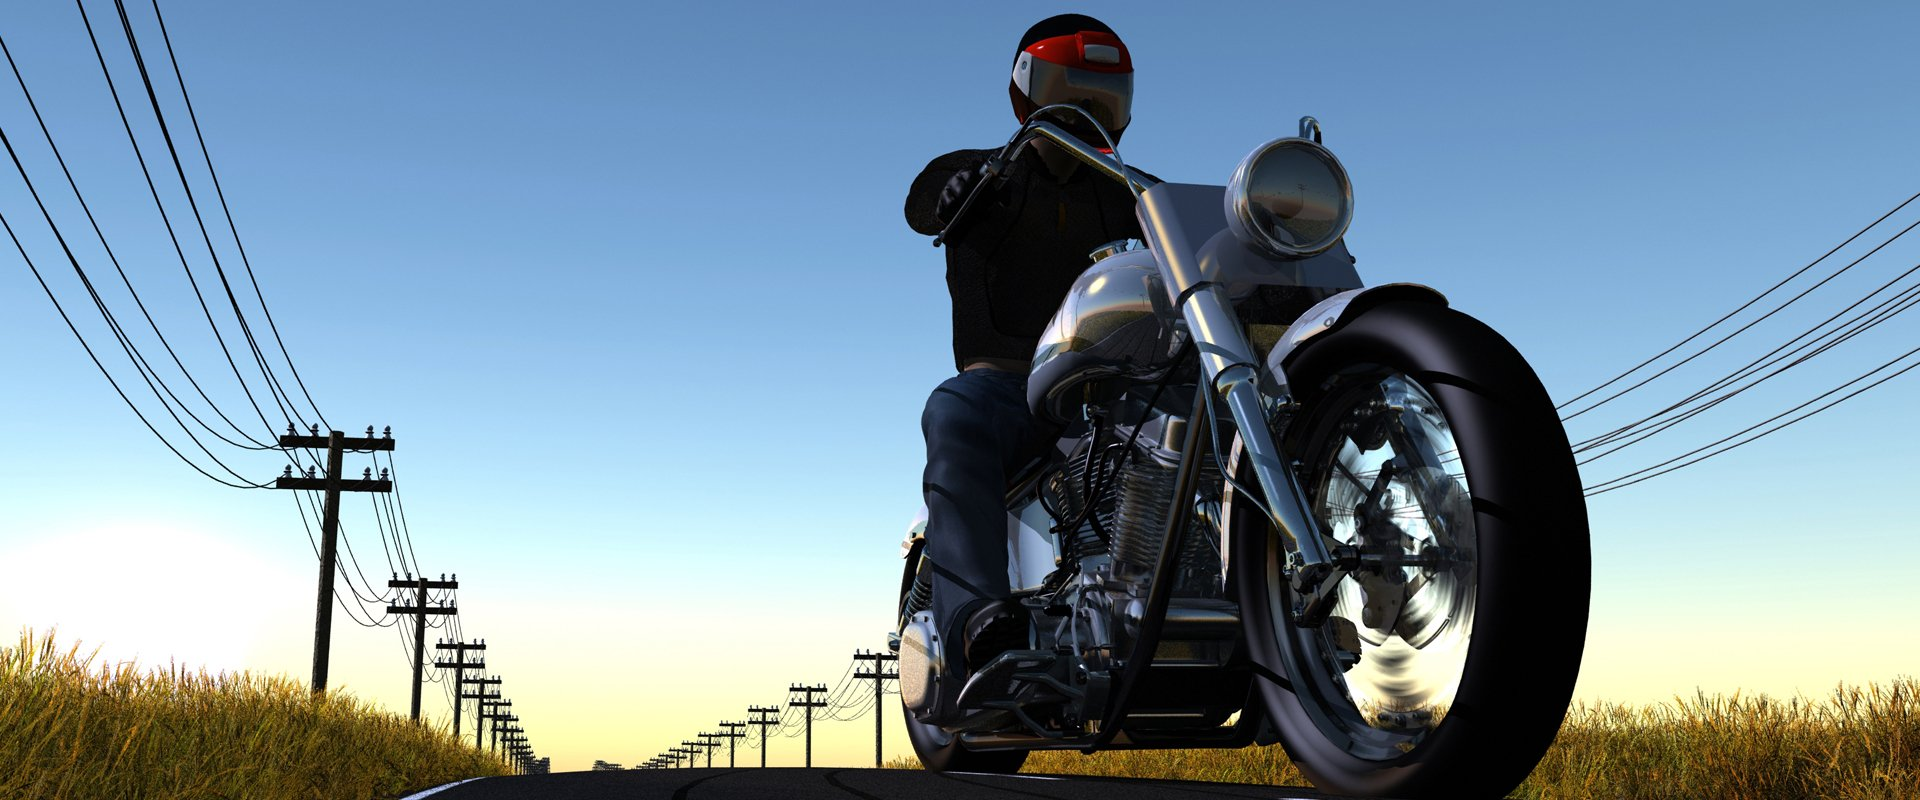 Motorcycle Training South East London